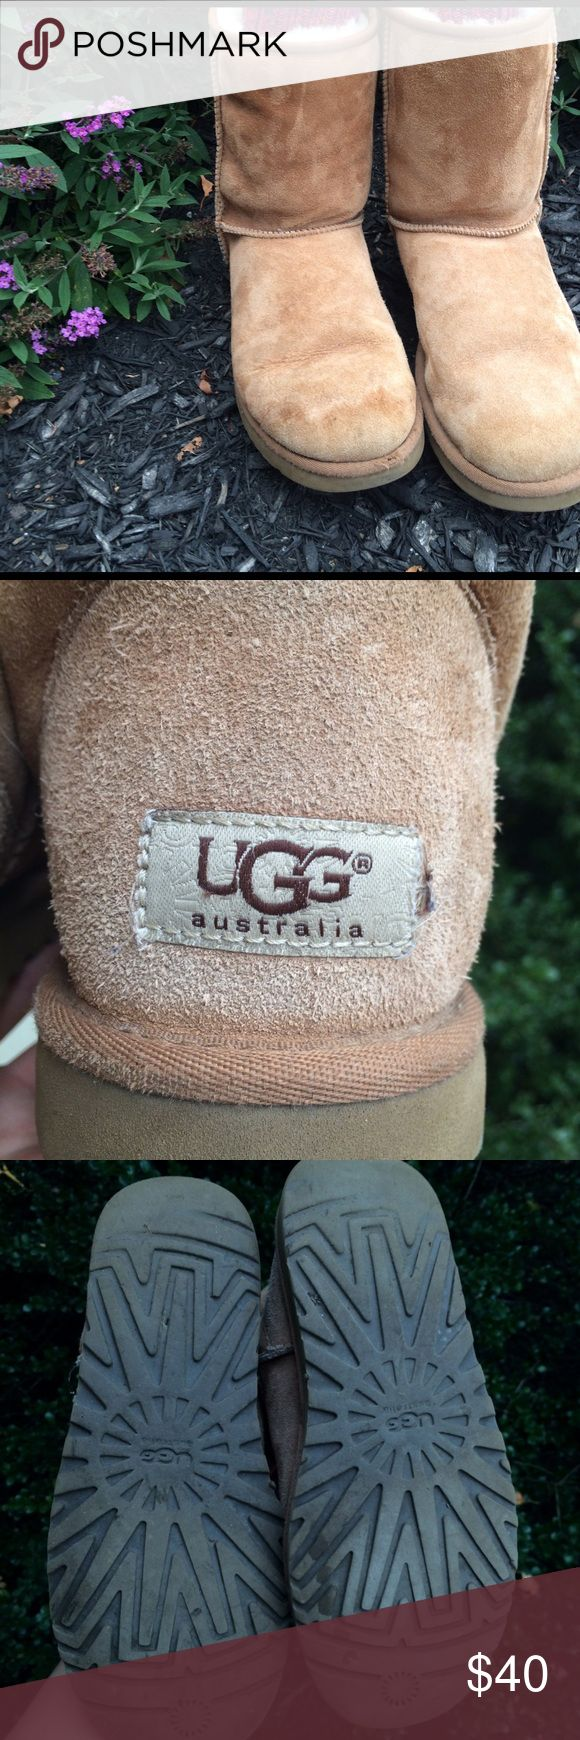 "Light Brown ""The Classic"" UGG Boots Soles in good condition, fur lining in good condition, some water damage to front of shoes, Size 8, Shipped in Original UGG Boot Box UGG Shoes Ankle Boots & Booties"